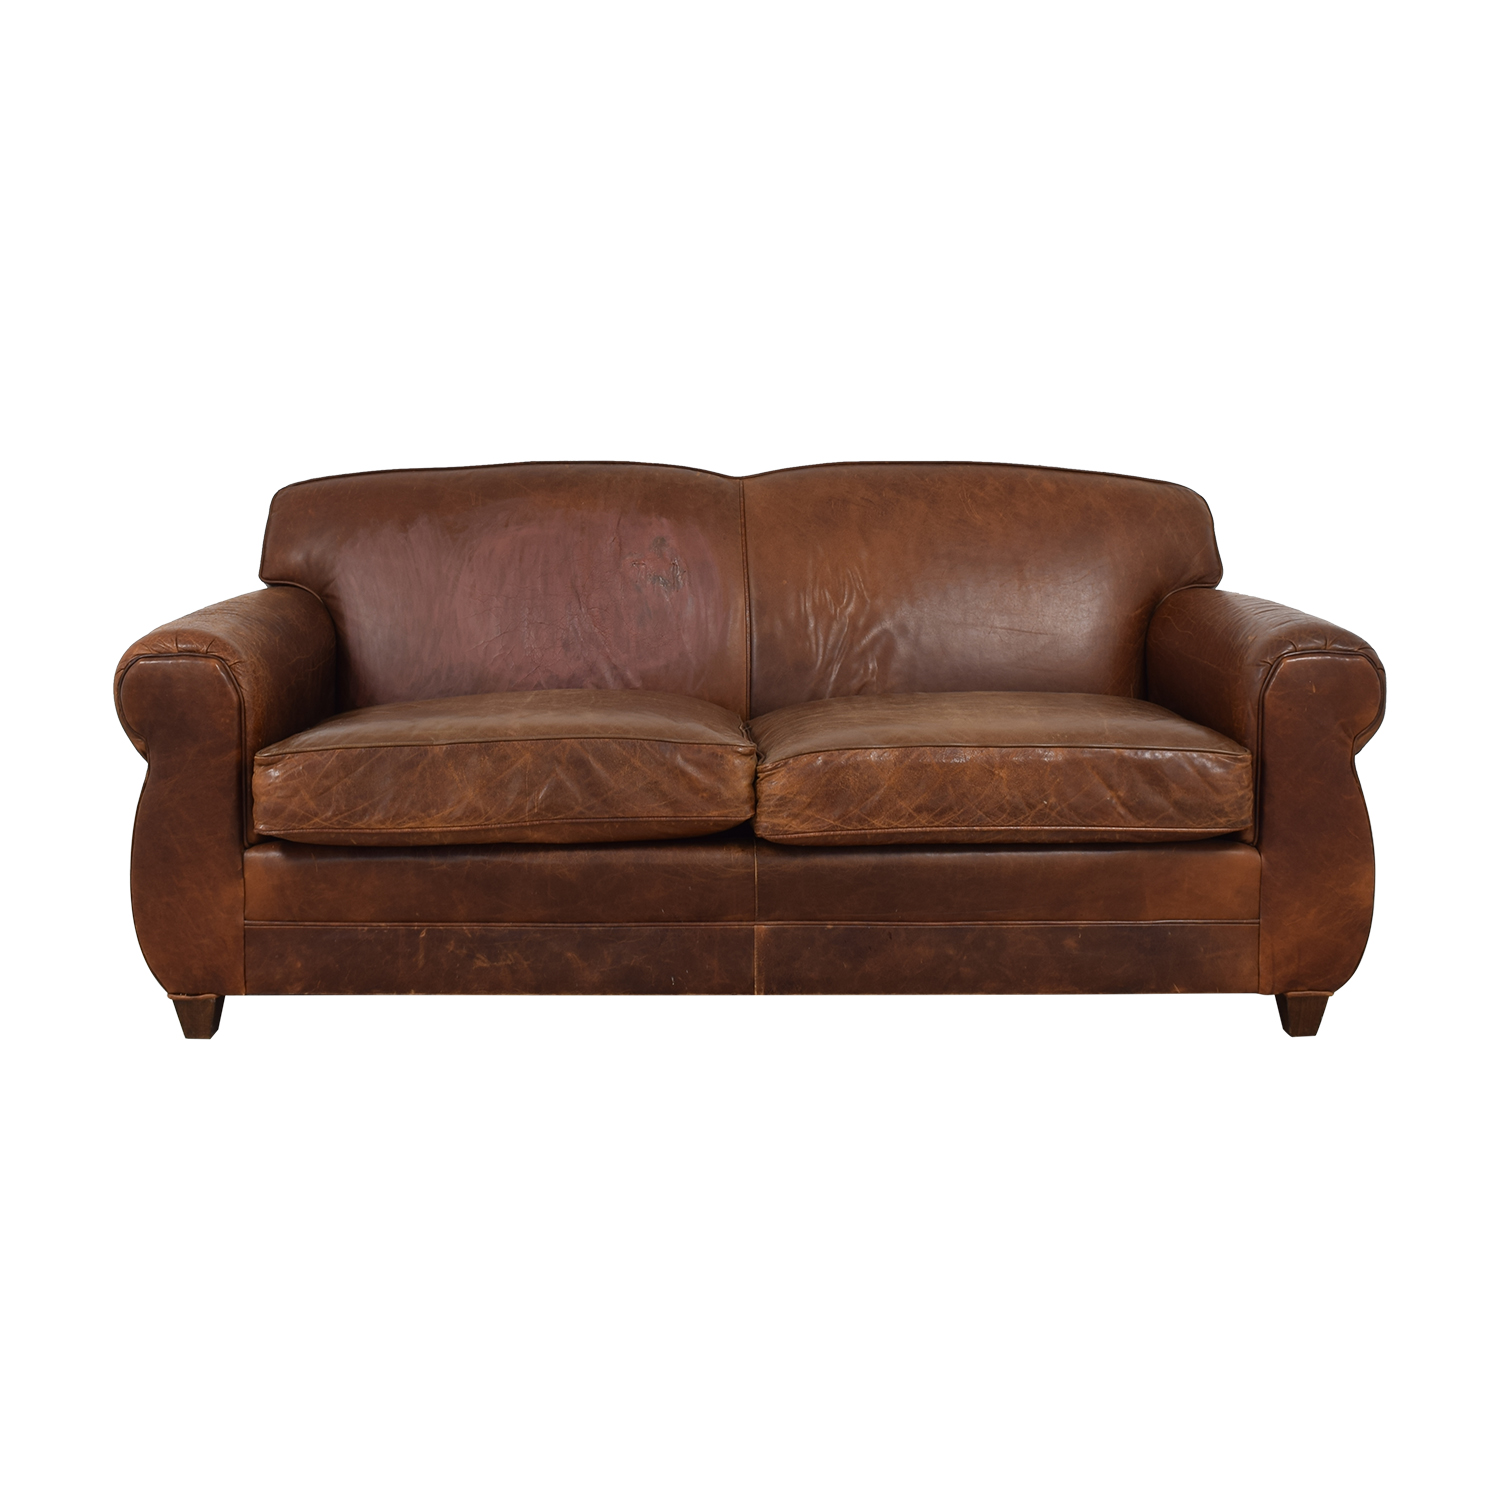 Restoration Hardware Restoration Hardware by Mitchell Gold Two Cushion Leather Sofa price